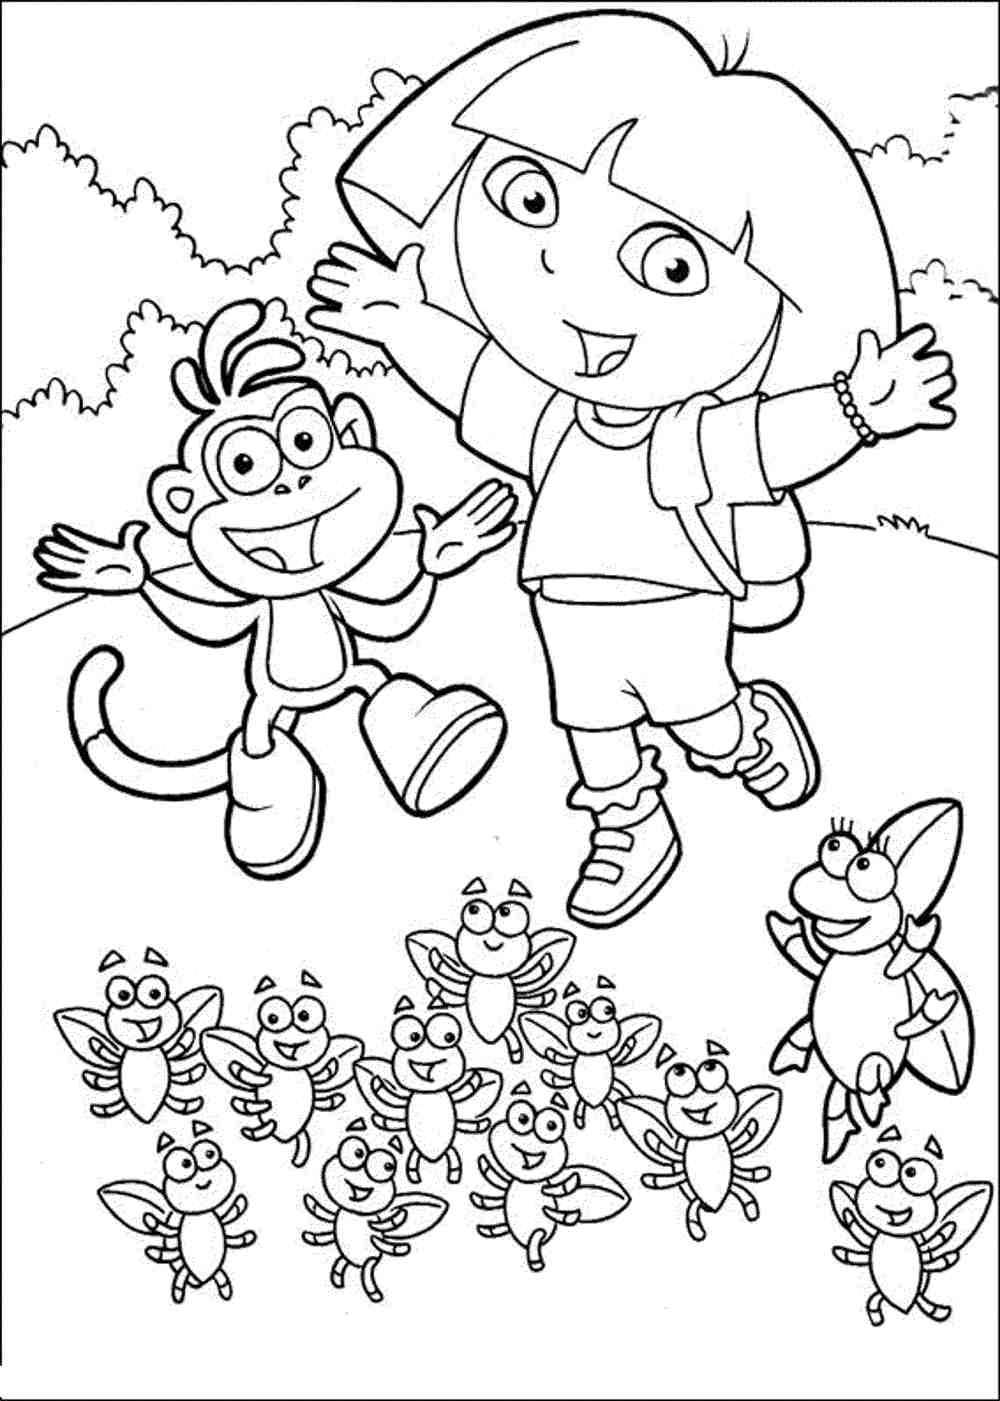 dora colouring sheet print download dora coloring pages to learn new things colouring dora sheet 1 1